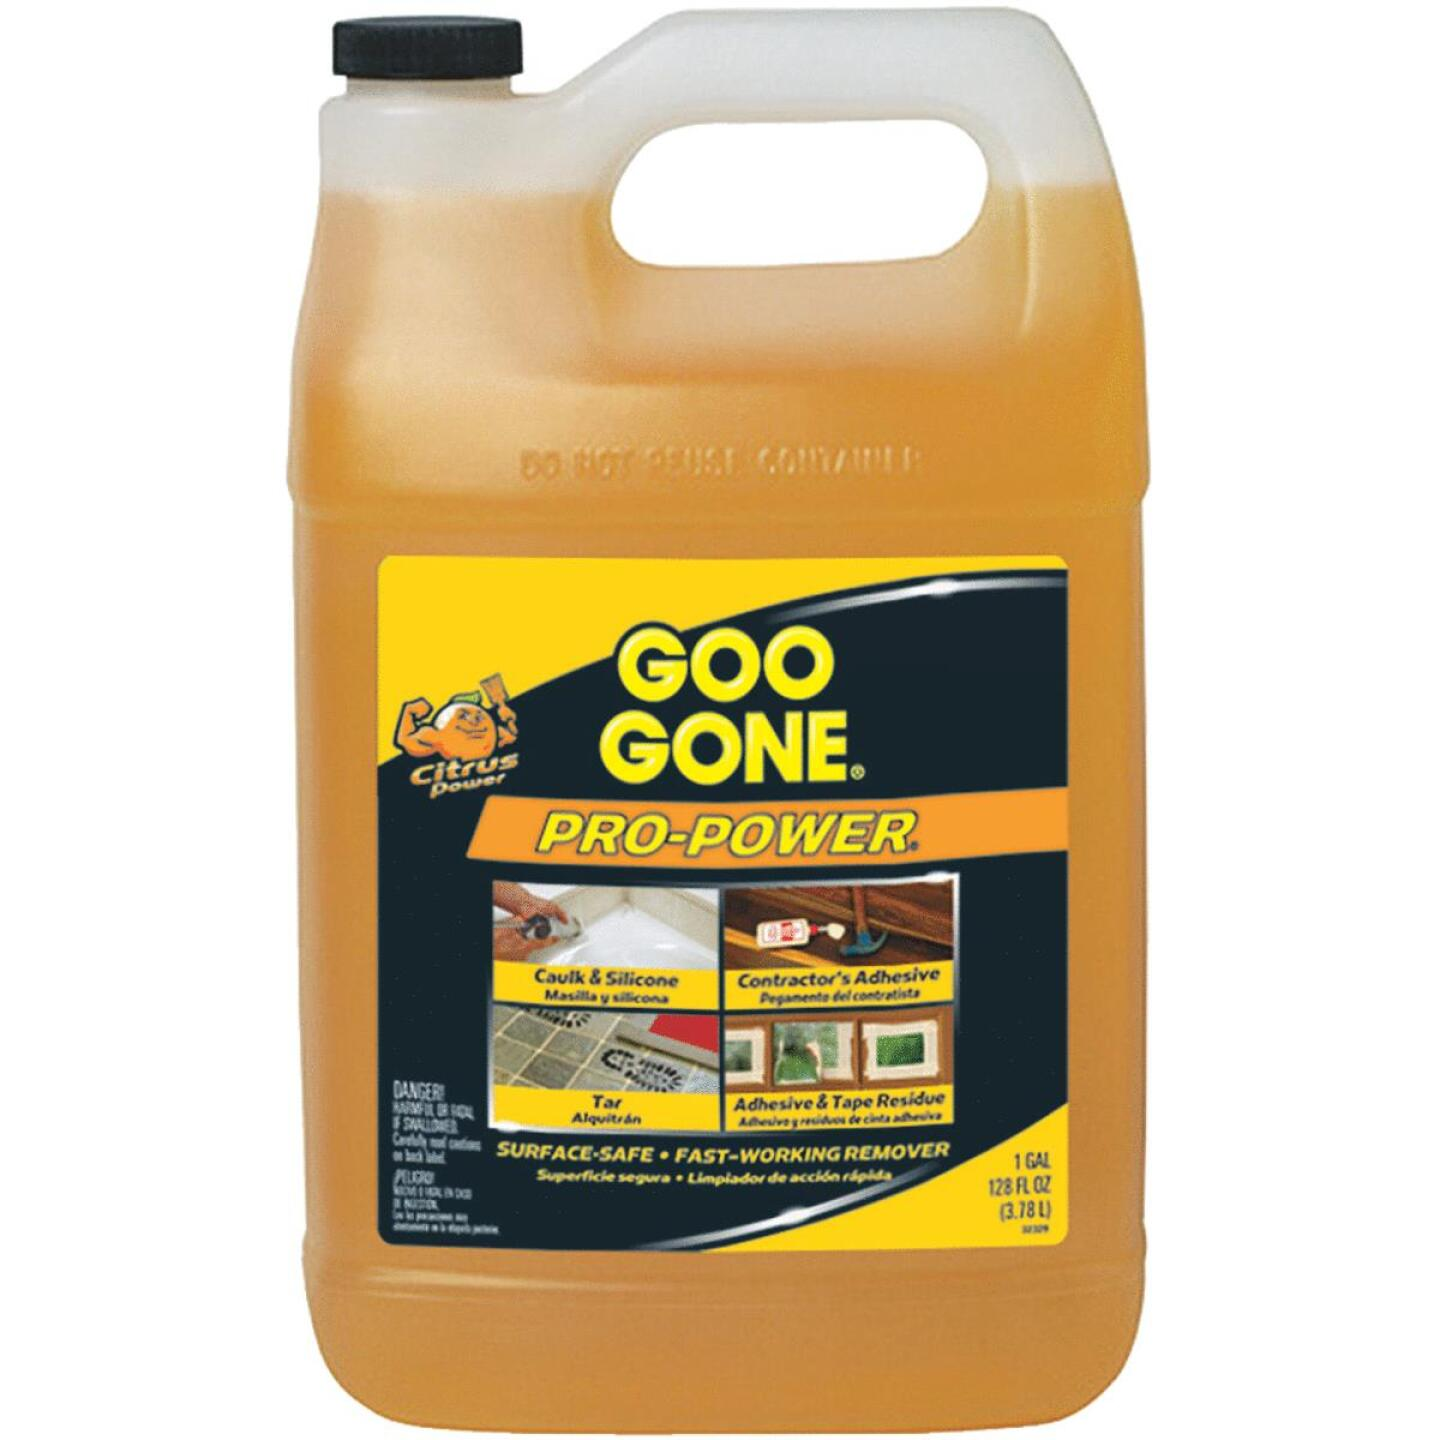 Goo Gone 1 Gal. Pro-Power Adhesive Remover Image 3